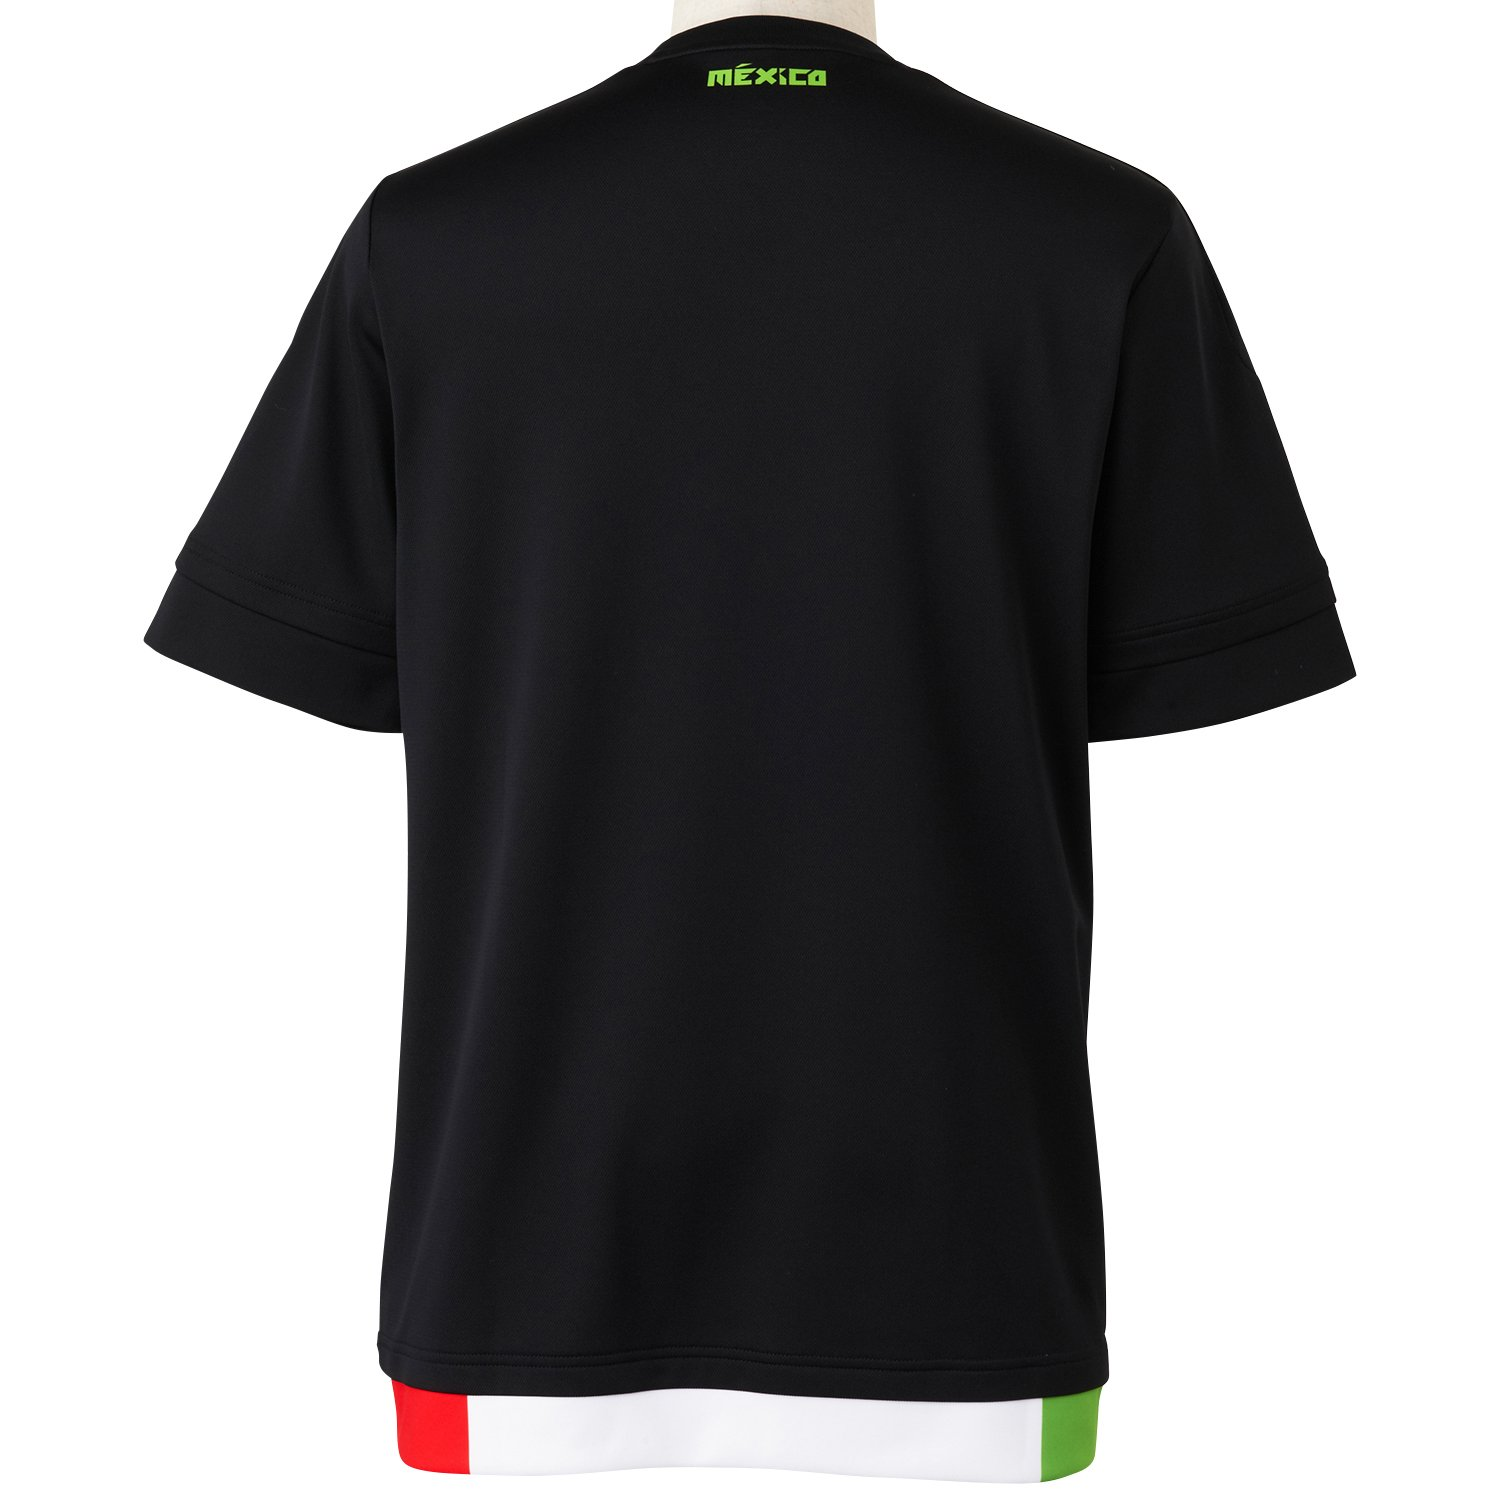 Adidas para Hombre de Manga Corta Camiseta de México del Jugador-del Negro Top:Black/Dark Grey/Semi Solar Green/Hi-Res Red F13 Bottom:White Talla:Small: ...